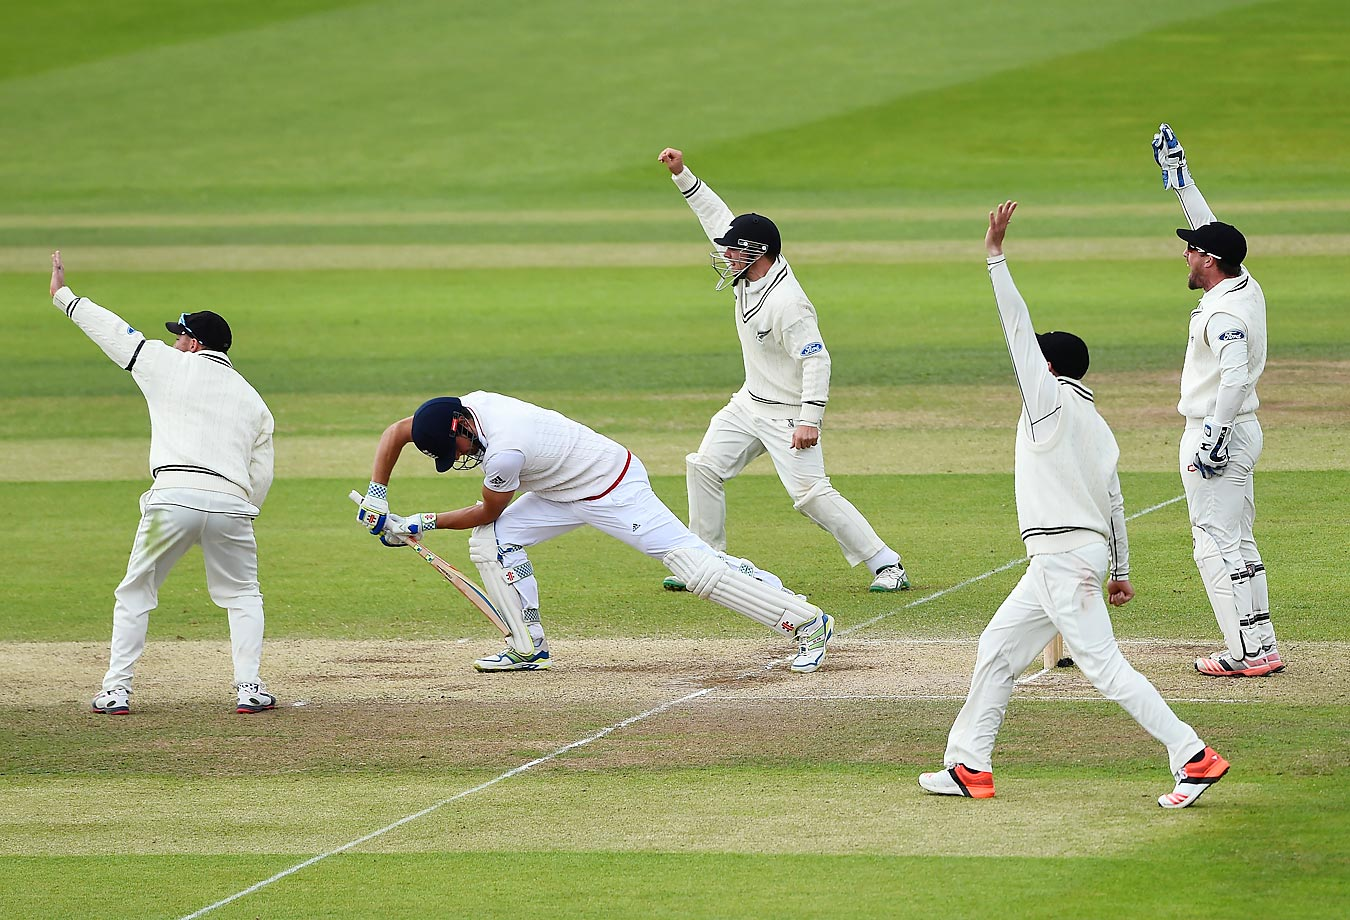 England's Alastair Cook loses his wicket for 56, trapped lbw (Leg before wicket) by Kane Williamson of New Zealand on day five of the second Test match between England and New Zealand.